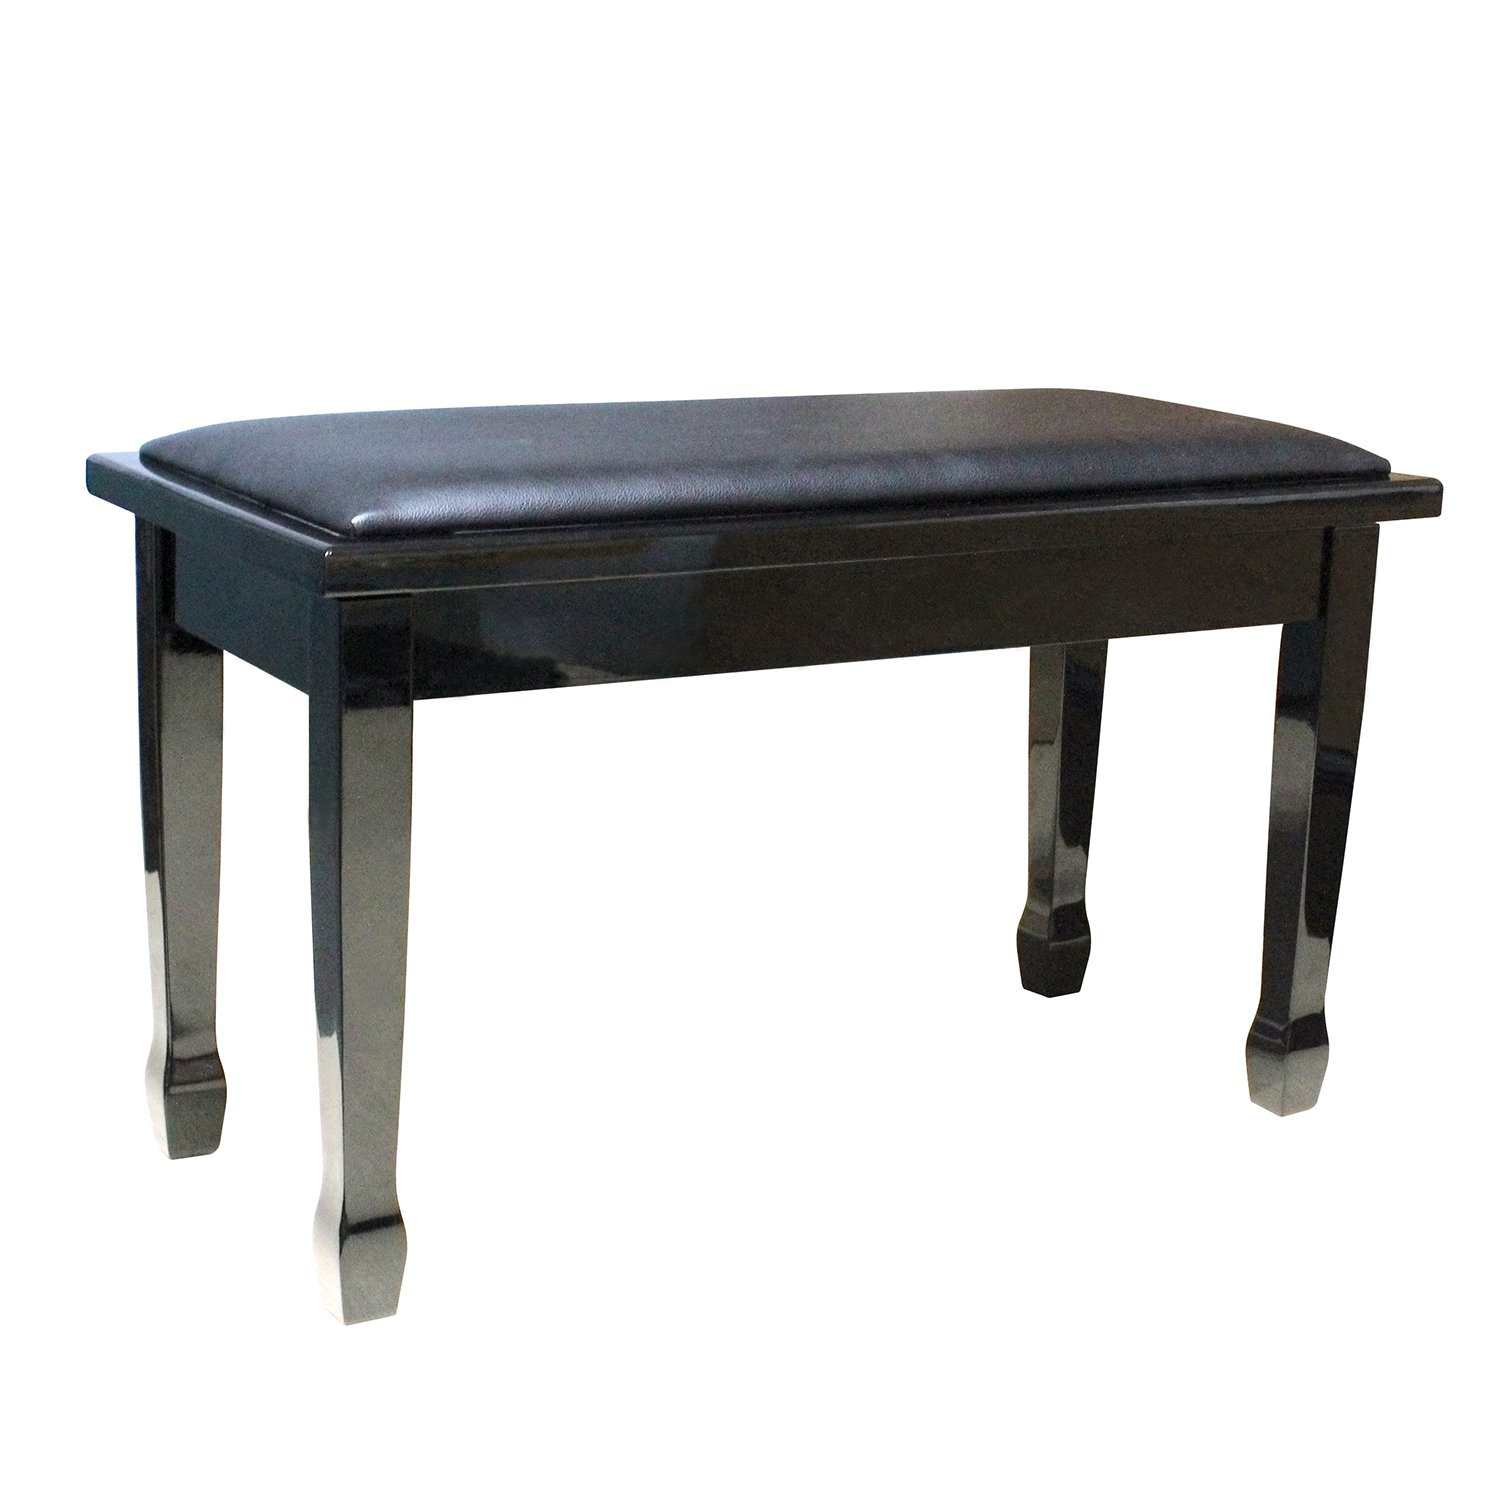 Flanger Piano Benches FJ-029